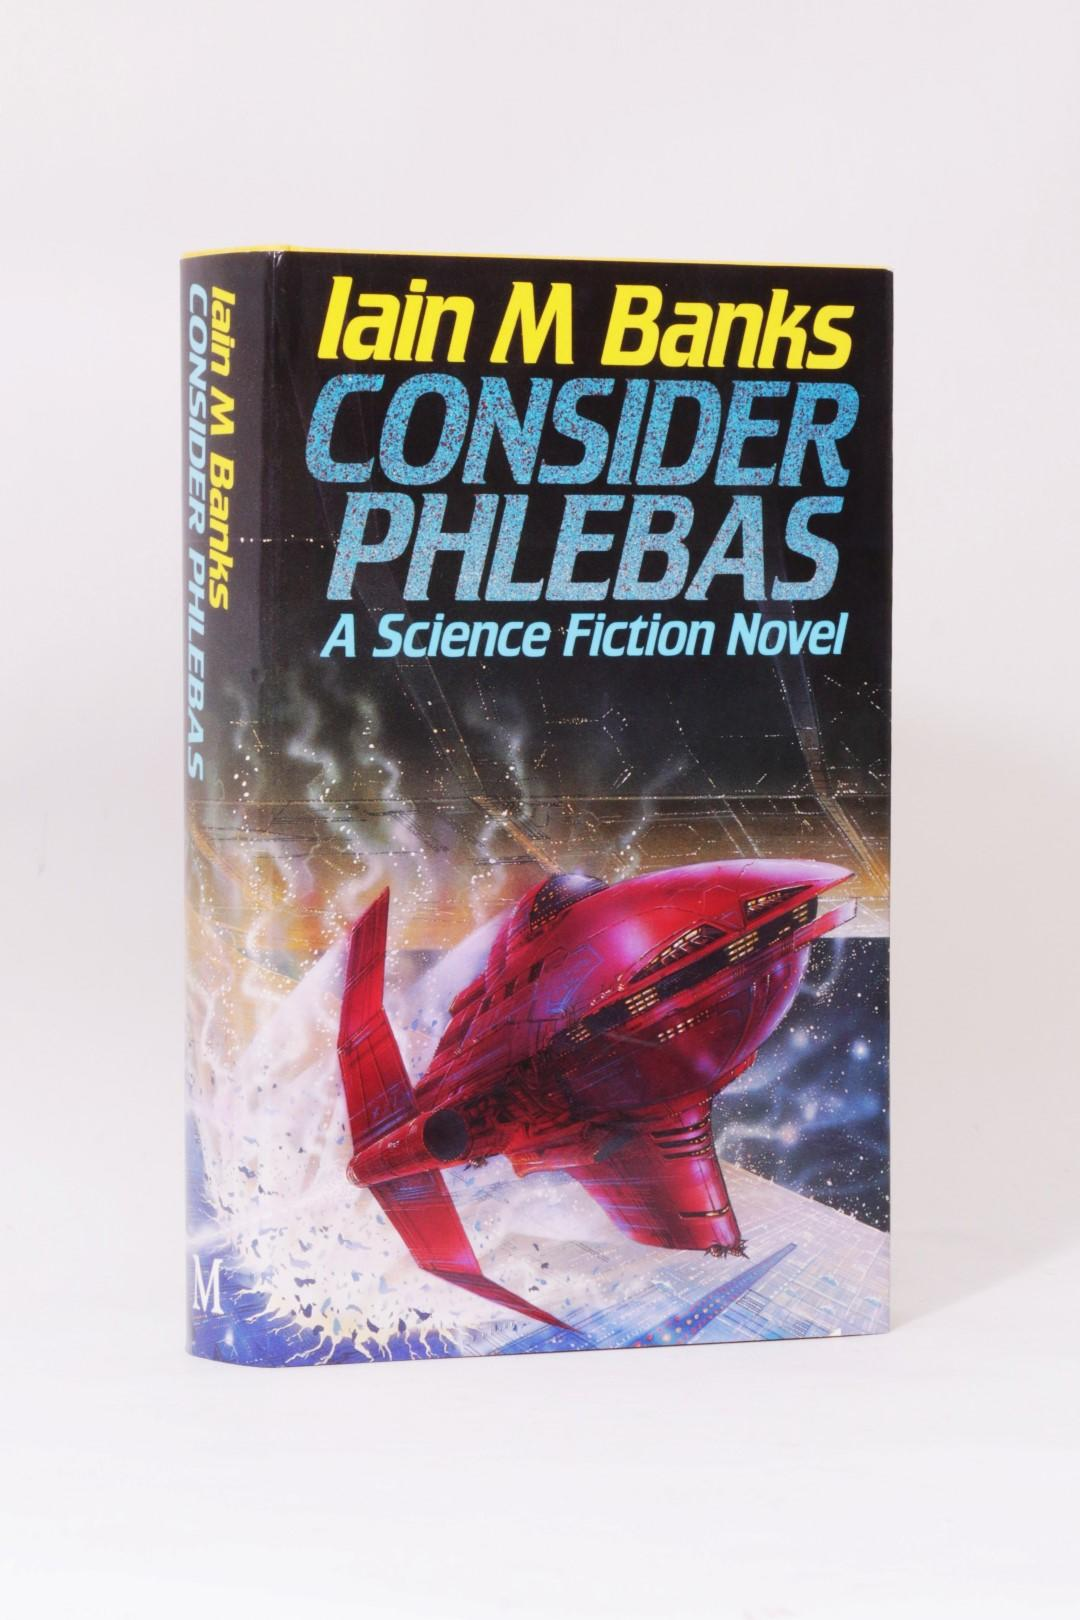 Iain M. Banks - Consider Phlebas - Macmillan & Co., 1987, First Edition.